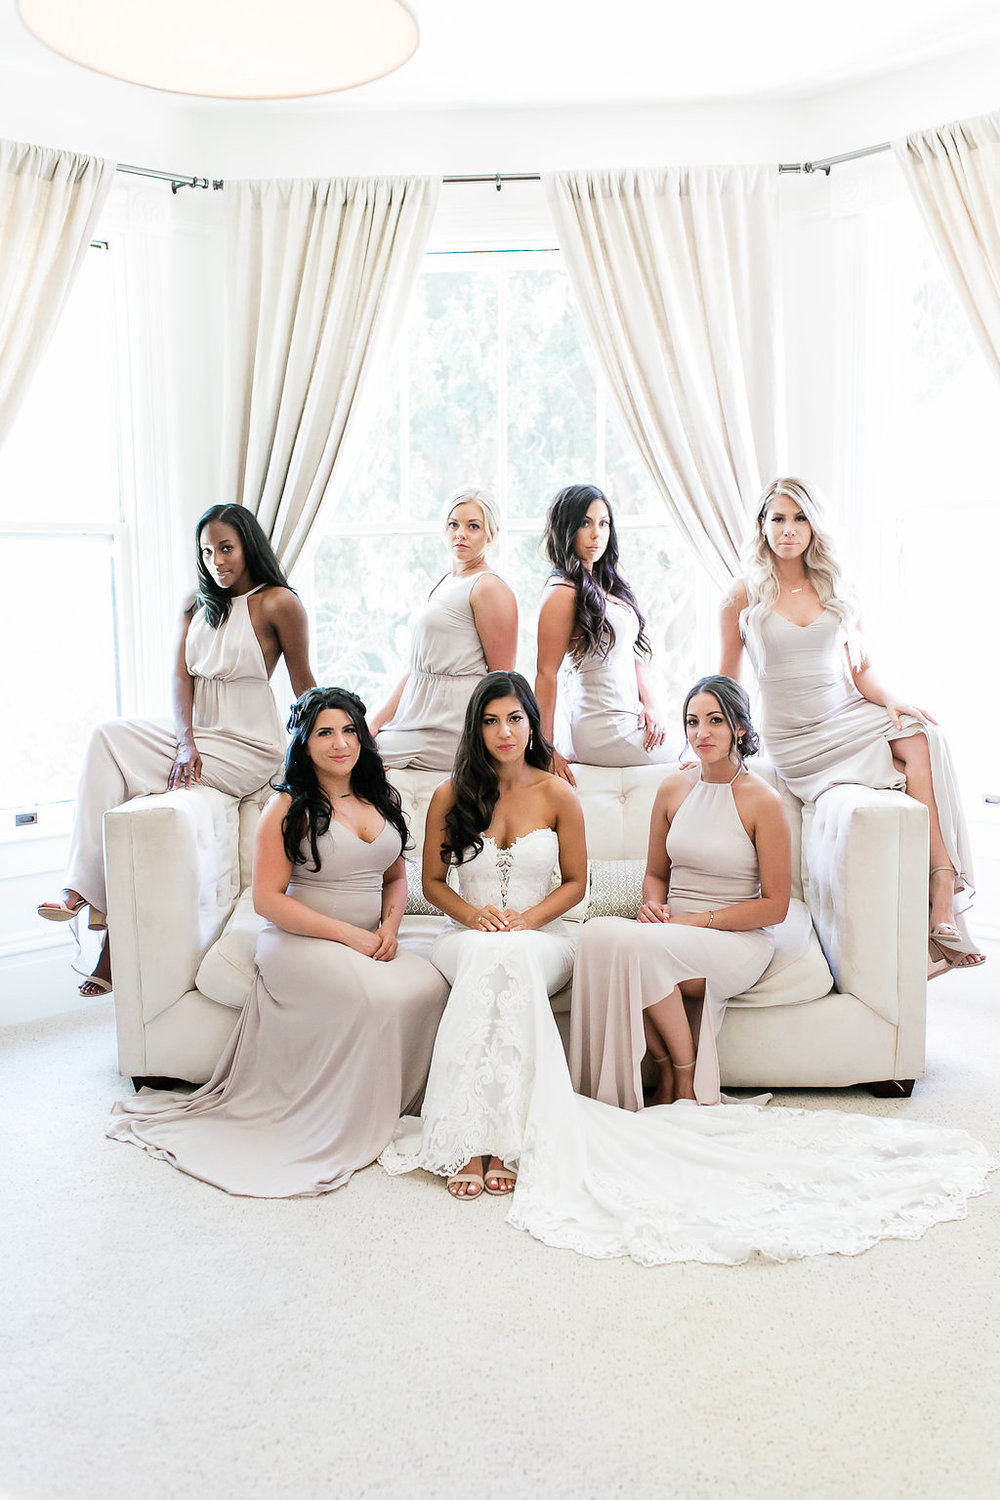 Park Winters Wedding | Bridesmaids Photo | Wedding Party Photo | Nude Bridesmaids Dress